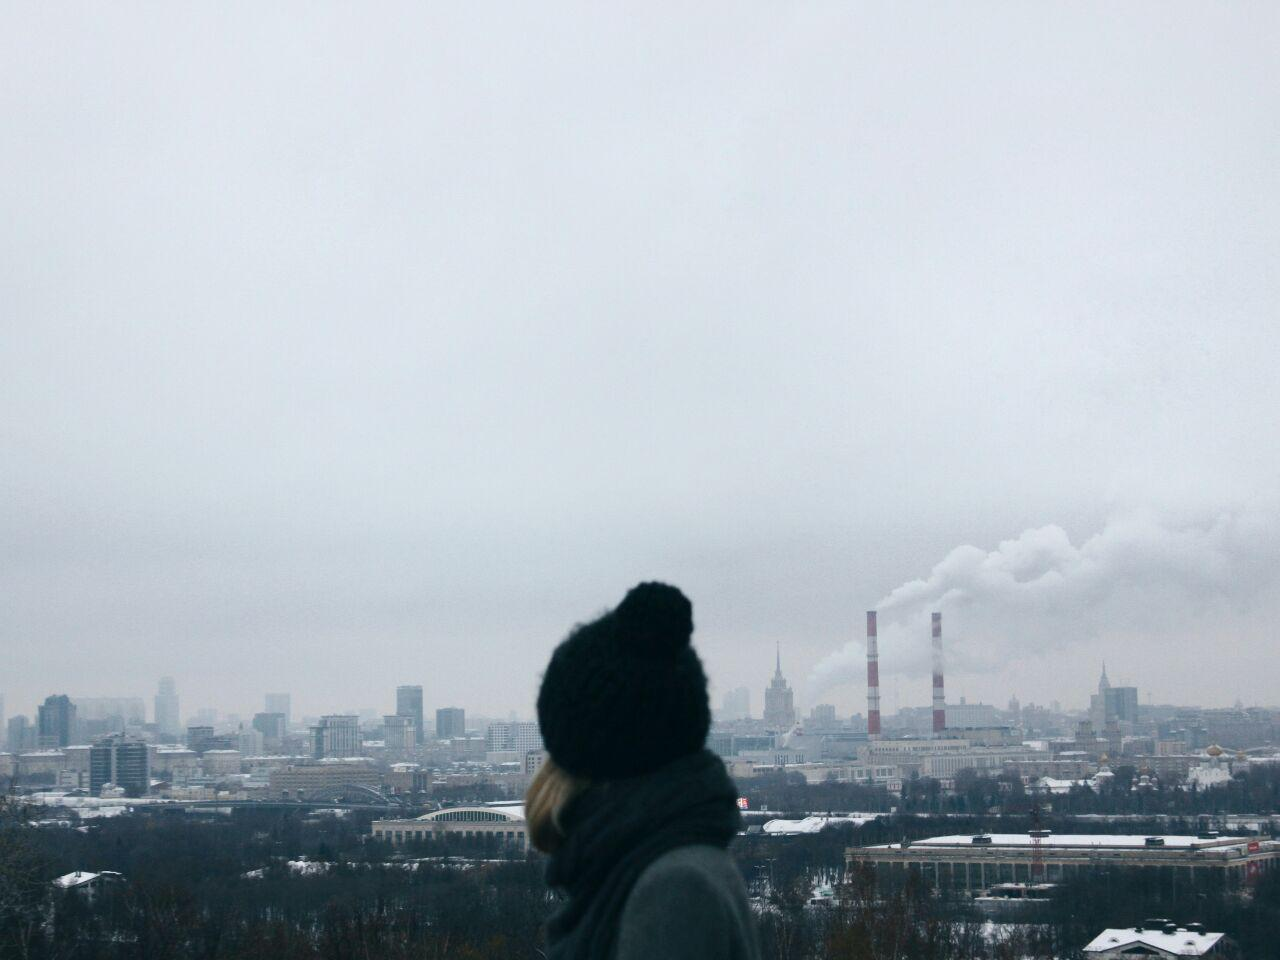 Moscow, Russia in winter - snow